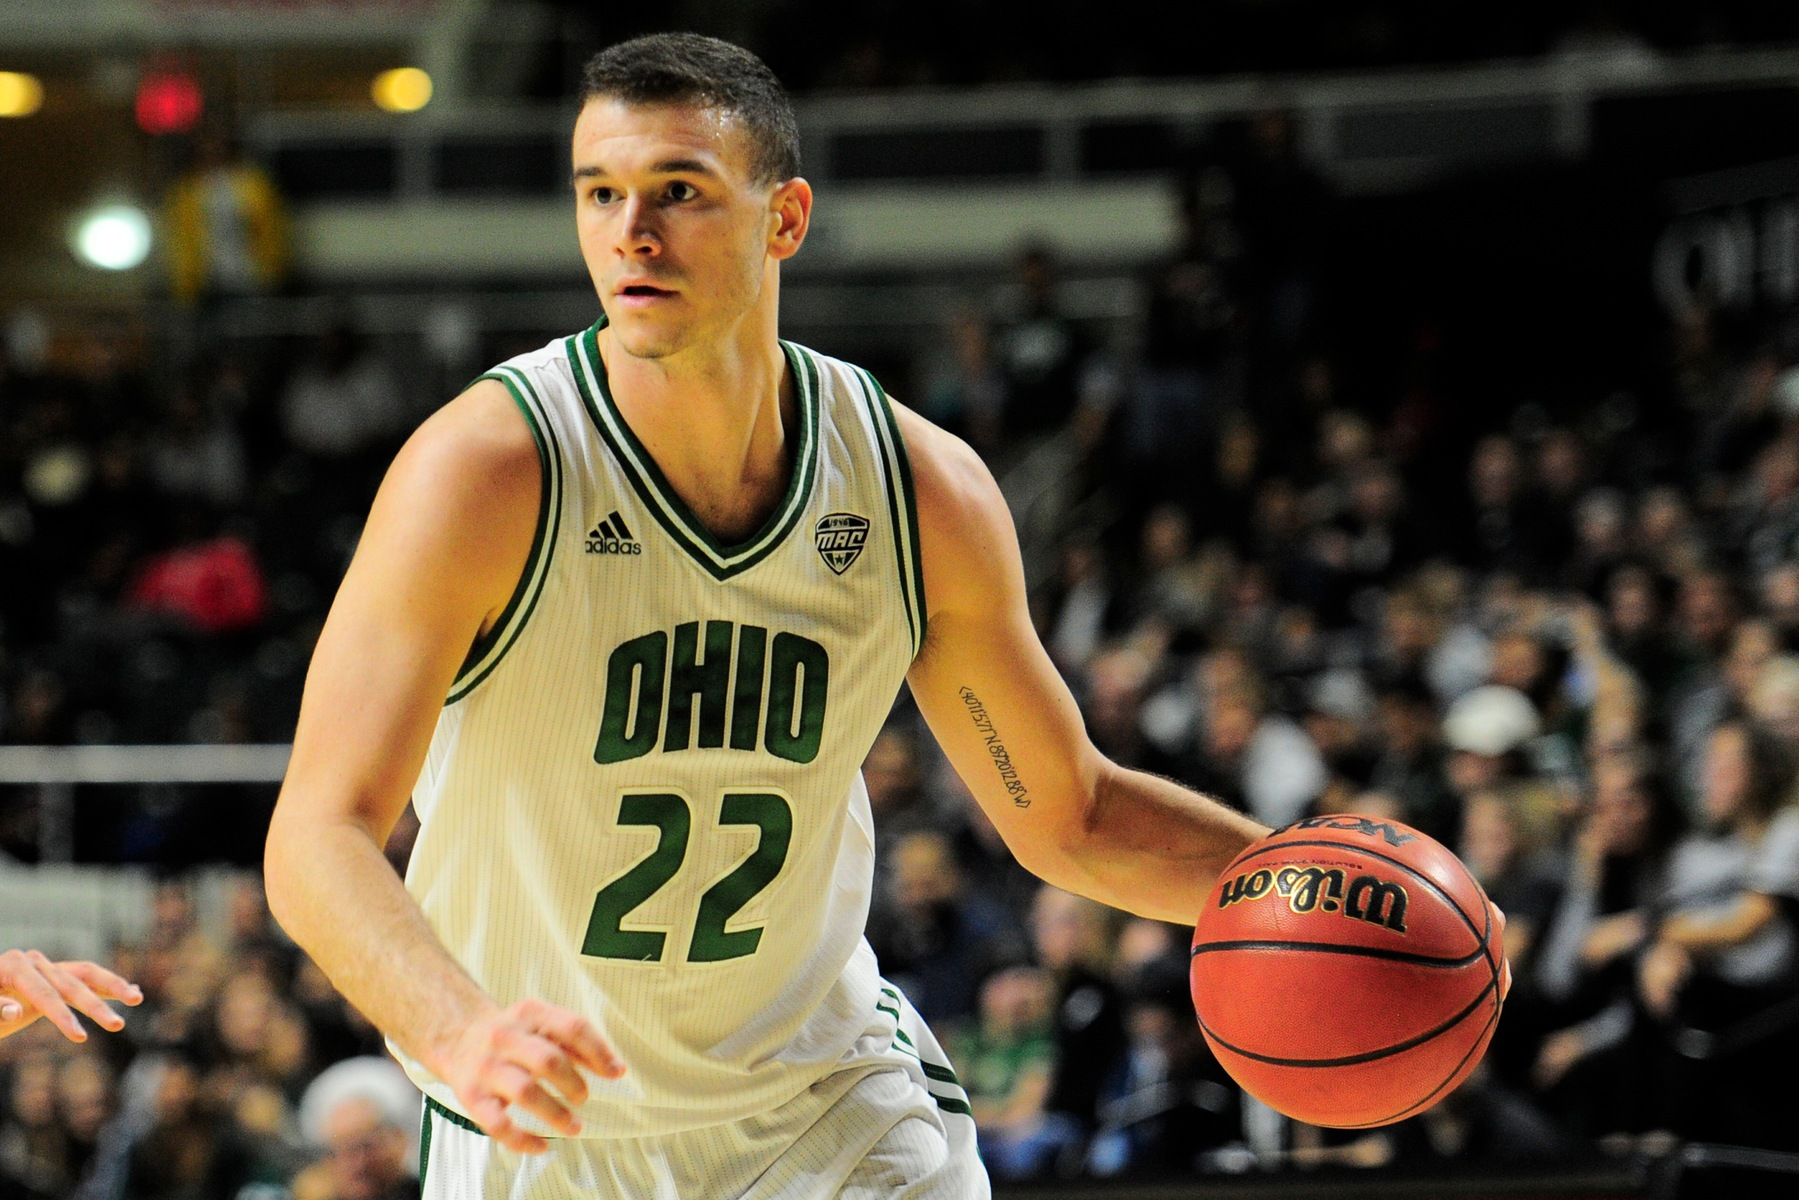 Ohio Men's Basketball's 2019 MAC Schedule Revealed